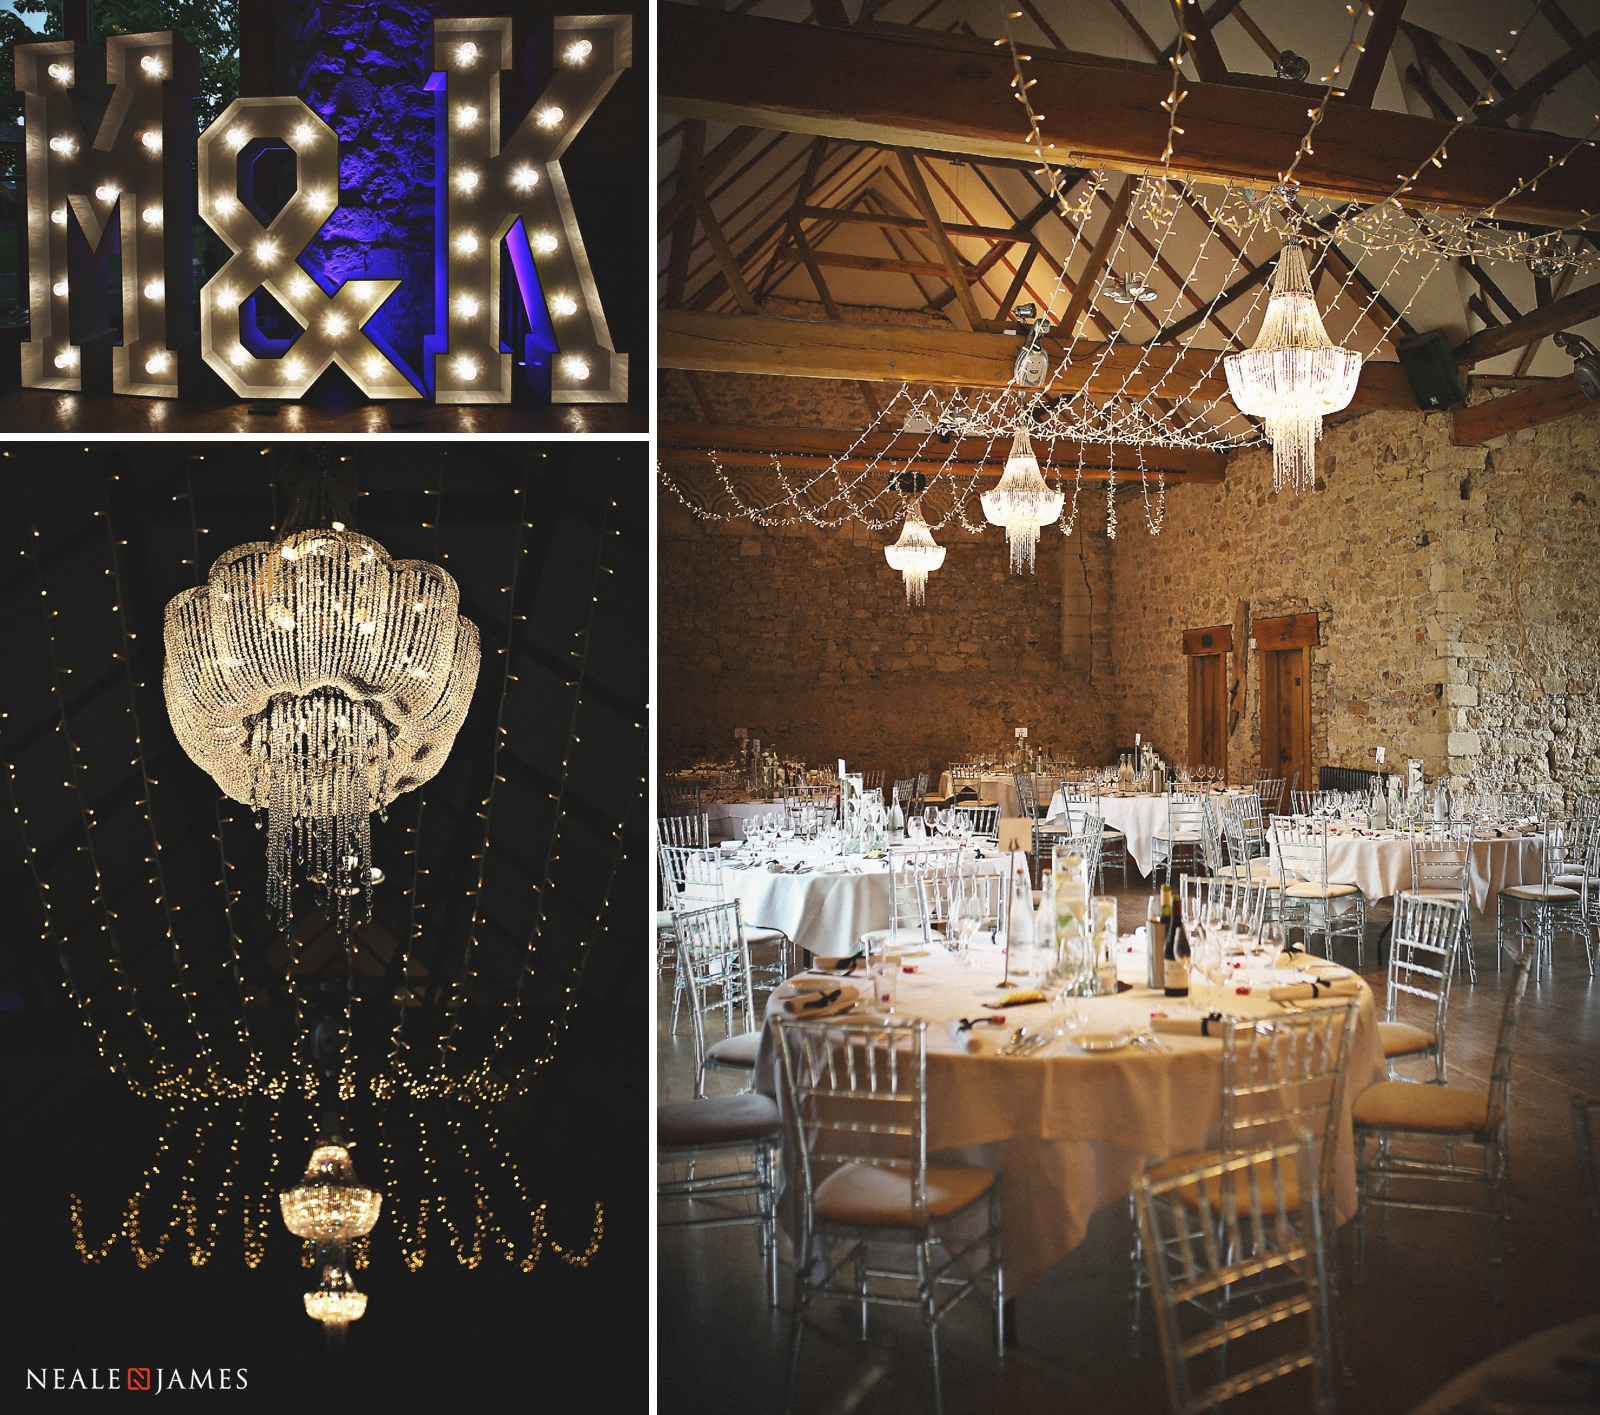 The Monk's Refectory at Notley Abbey dressed stylishly for a wedding reception